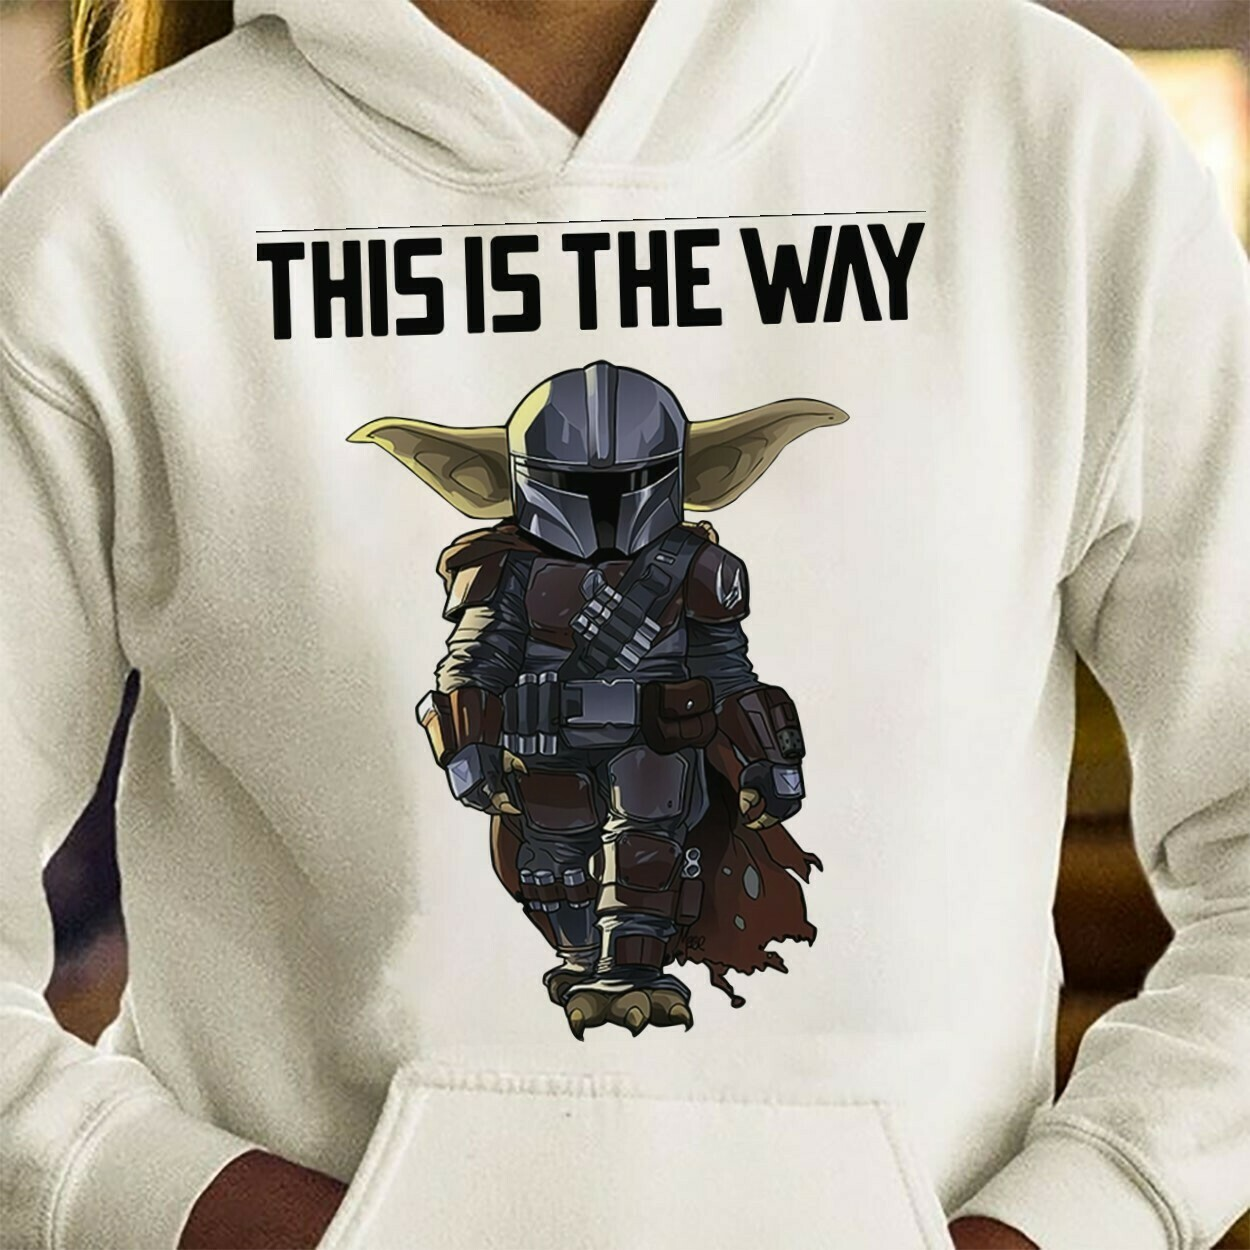 Star Wars The Mandalorian This Is The Way Spirit Portrait Helmet Sticker Bounty Hunter Galaxy Edge Boba Fett T-Shirt Long Sleeve Sweatshirt Hoodie Jolly Family Gifts